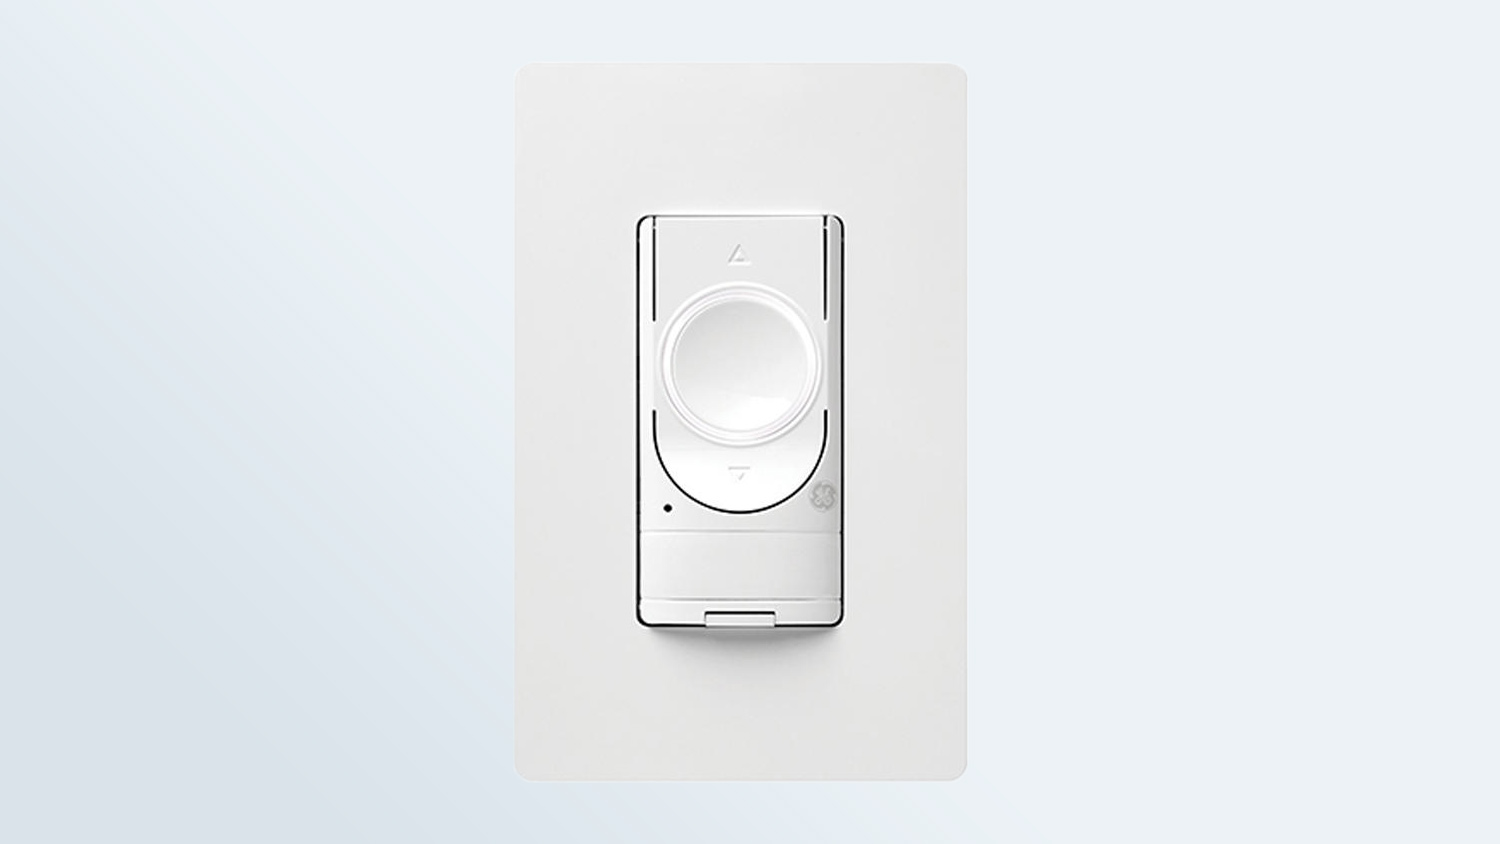 Best cheap smart home devices: GE C-Start Smart Switch Motion Sensing Dimmer (Credit: GE Lighting)